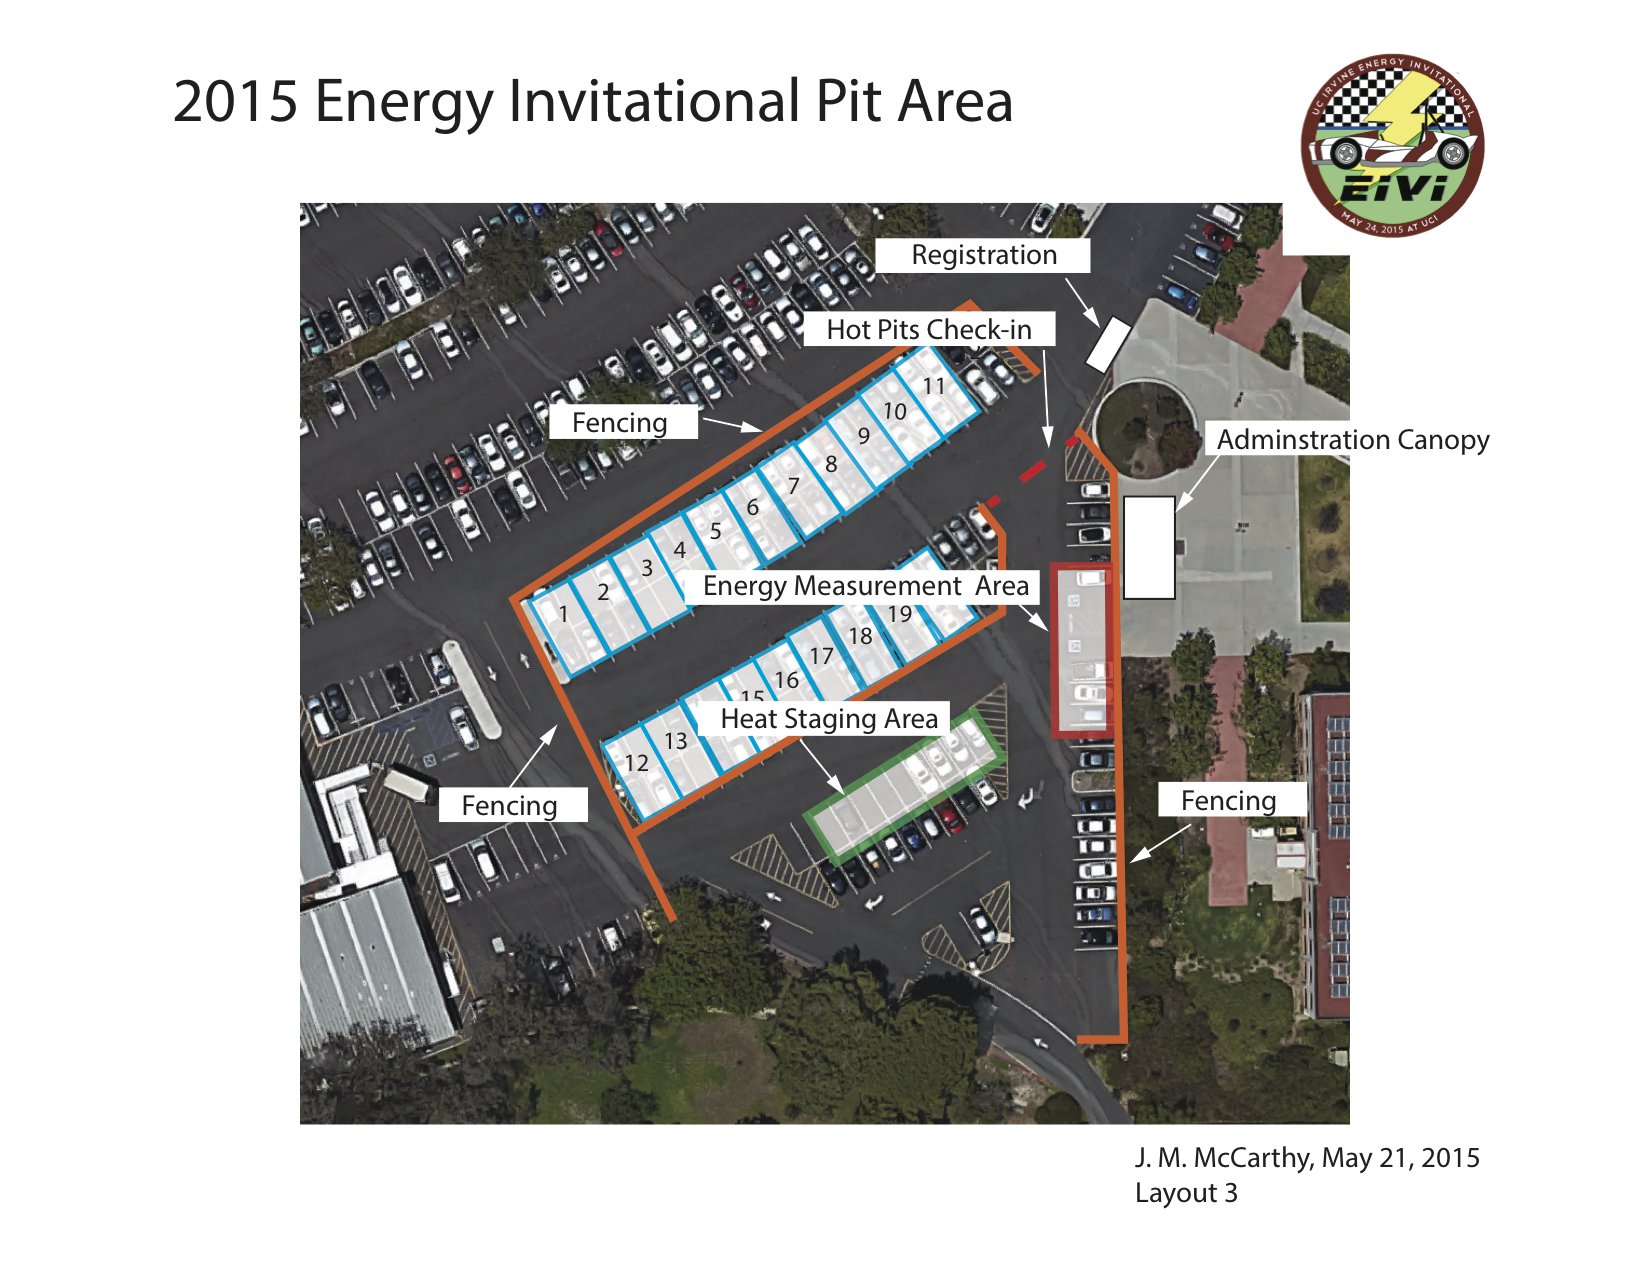 2015 Energy Invitational Layout 3 hot pits